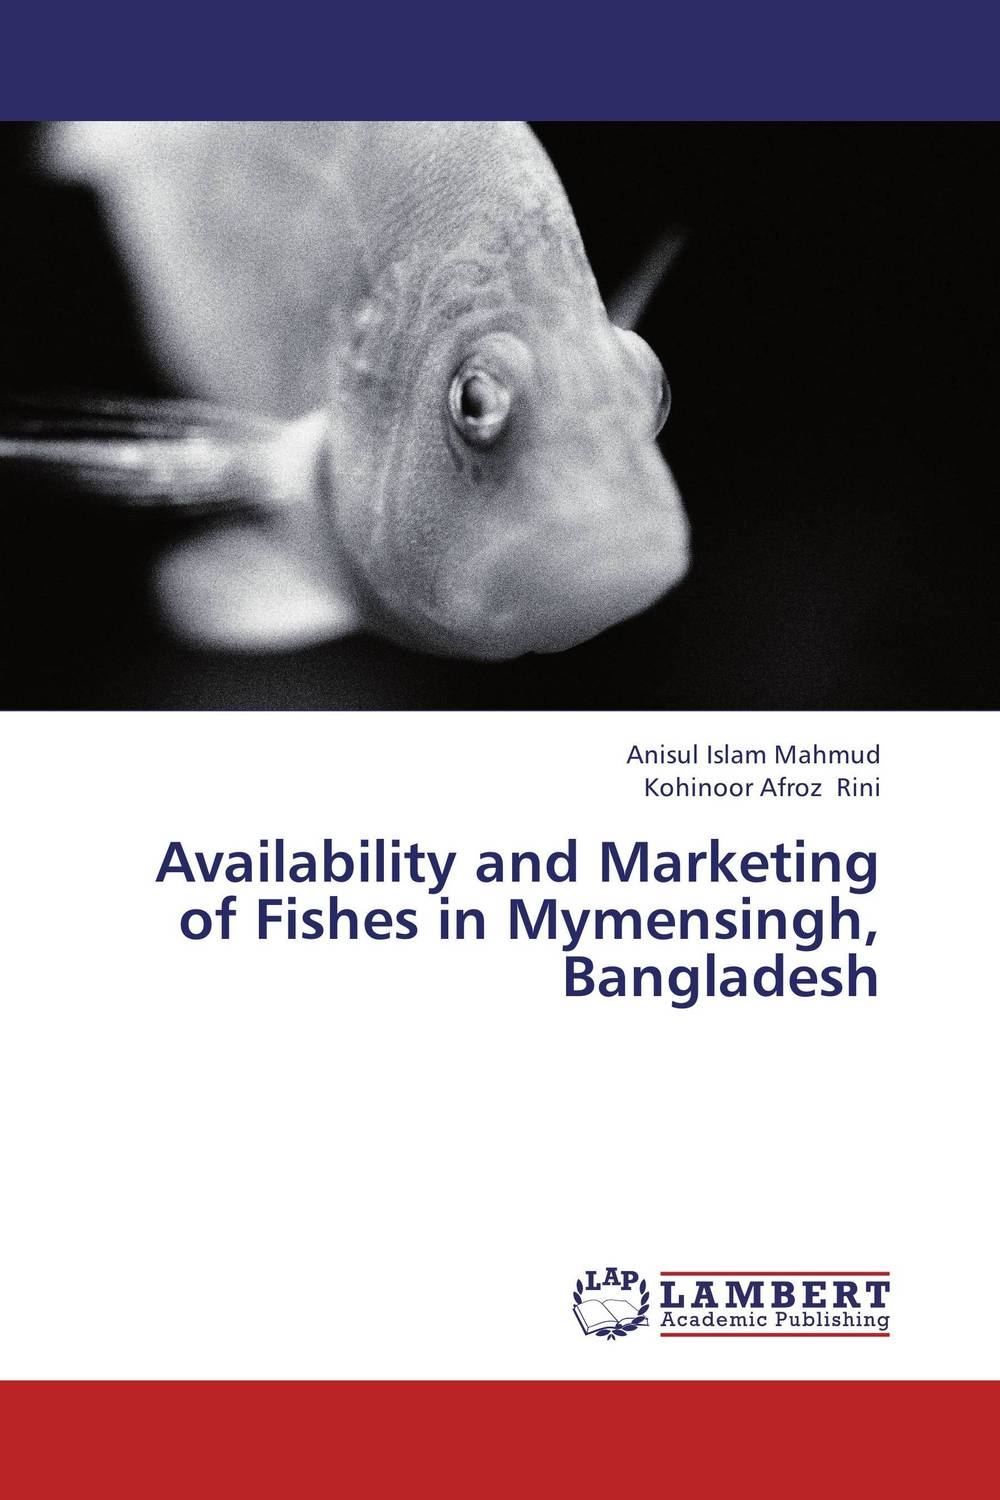 Availability and Marketing of Fishes in Mymensingh, Bangladesh prospects of citrus producers and marketing in pakistani california